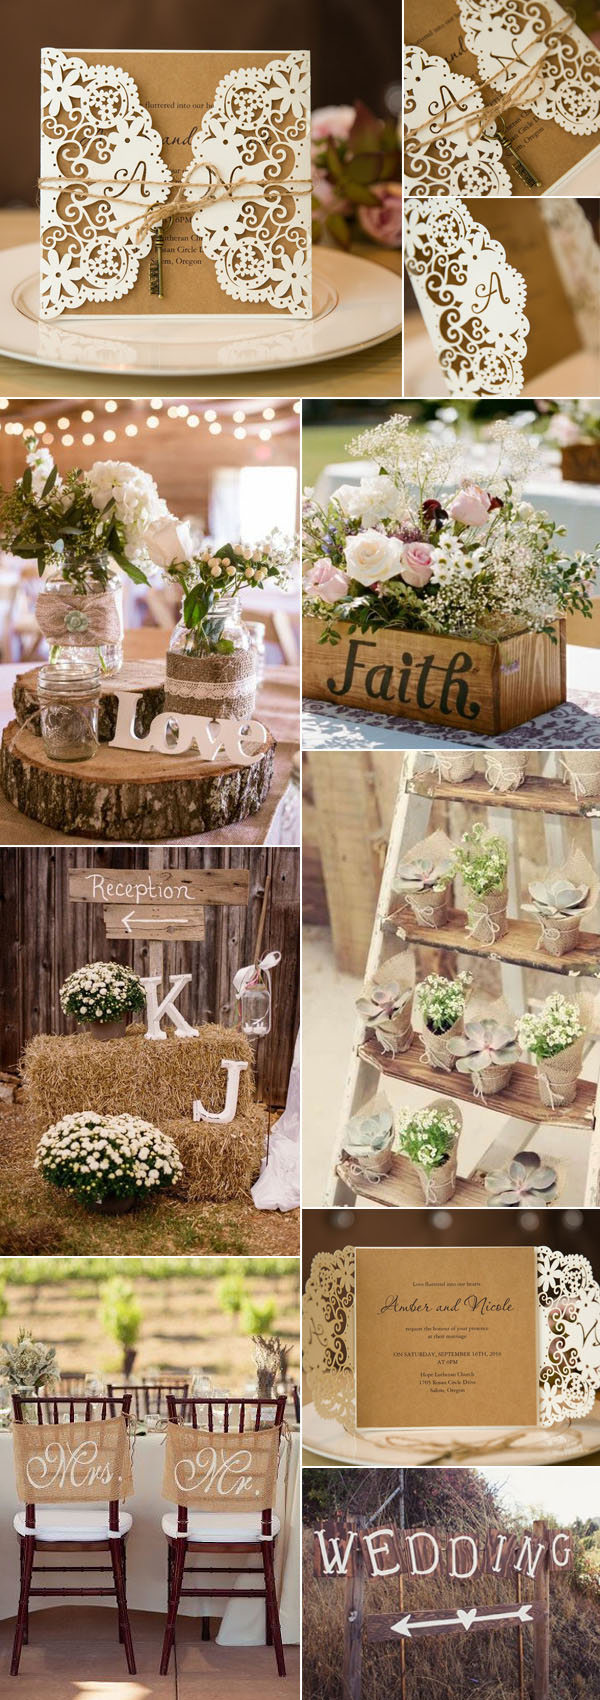 Country Chic Wedding Ideas with Vintage Wedding Invitations